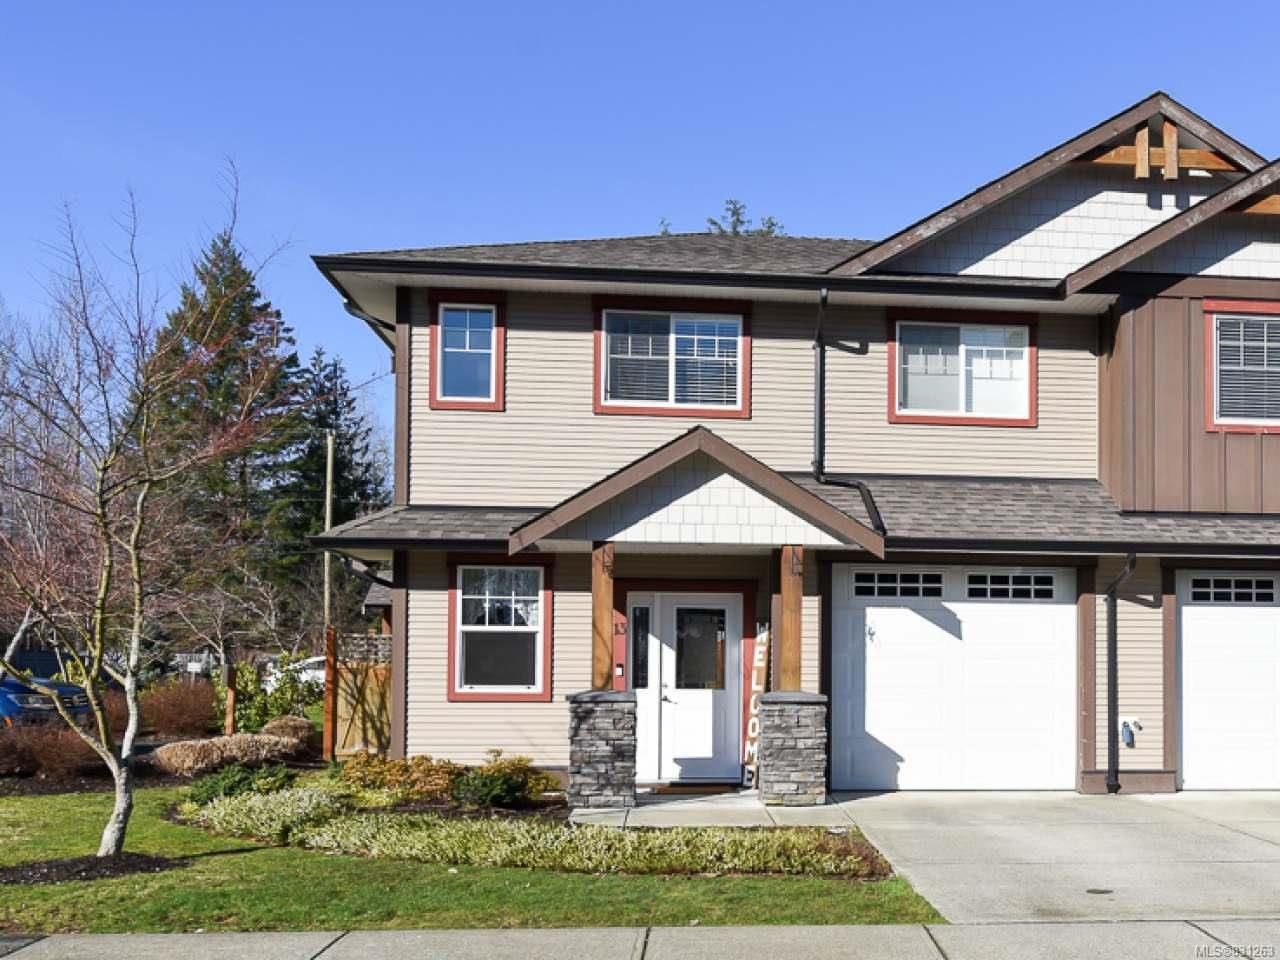 Main Photo: 13 2112 Cumberland Rd in COURTENAY: CV Courtenay City Row/Townhouse for sale (Comox Valley)  : MLS®# 831263